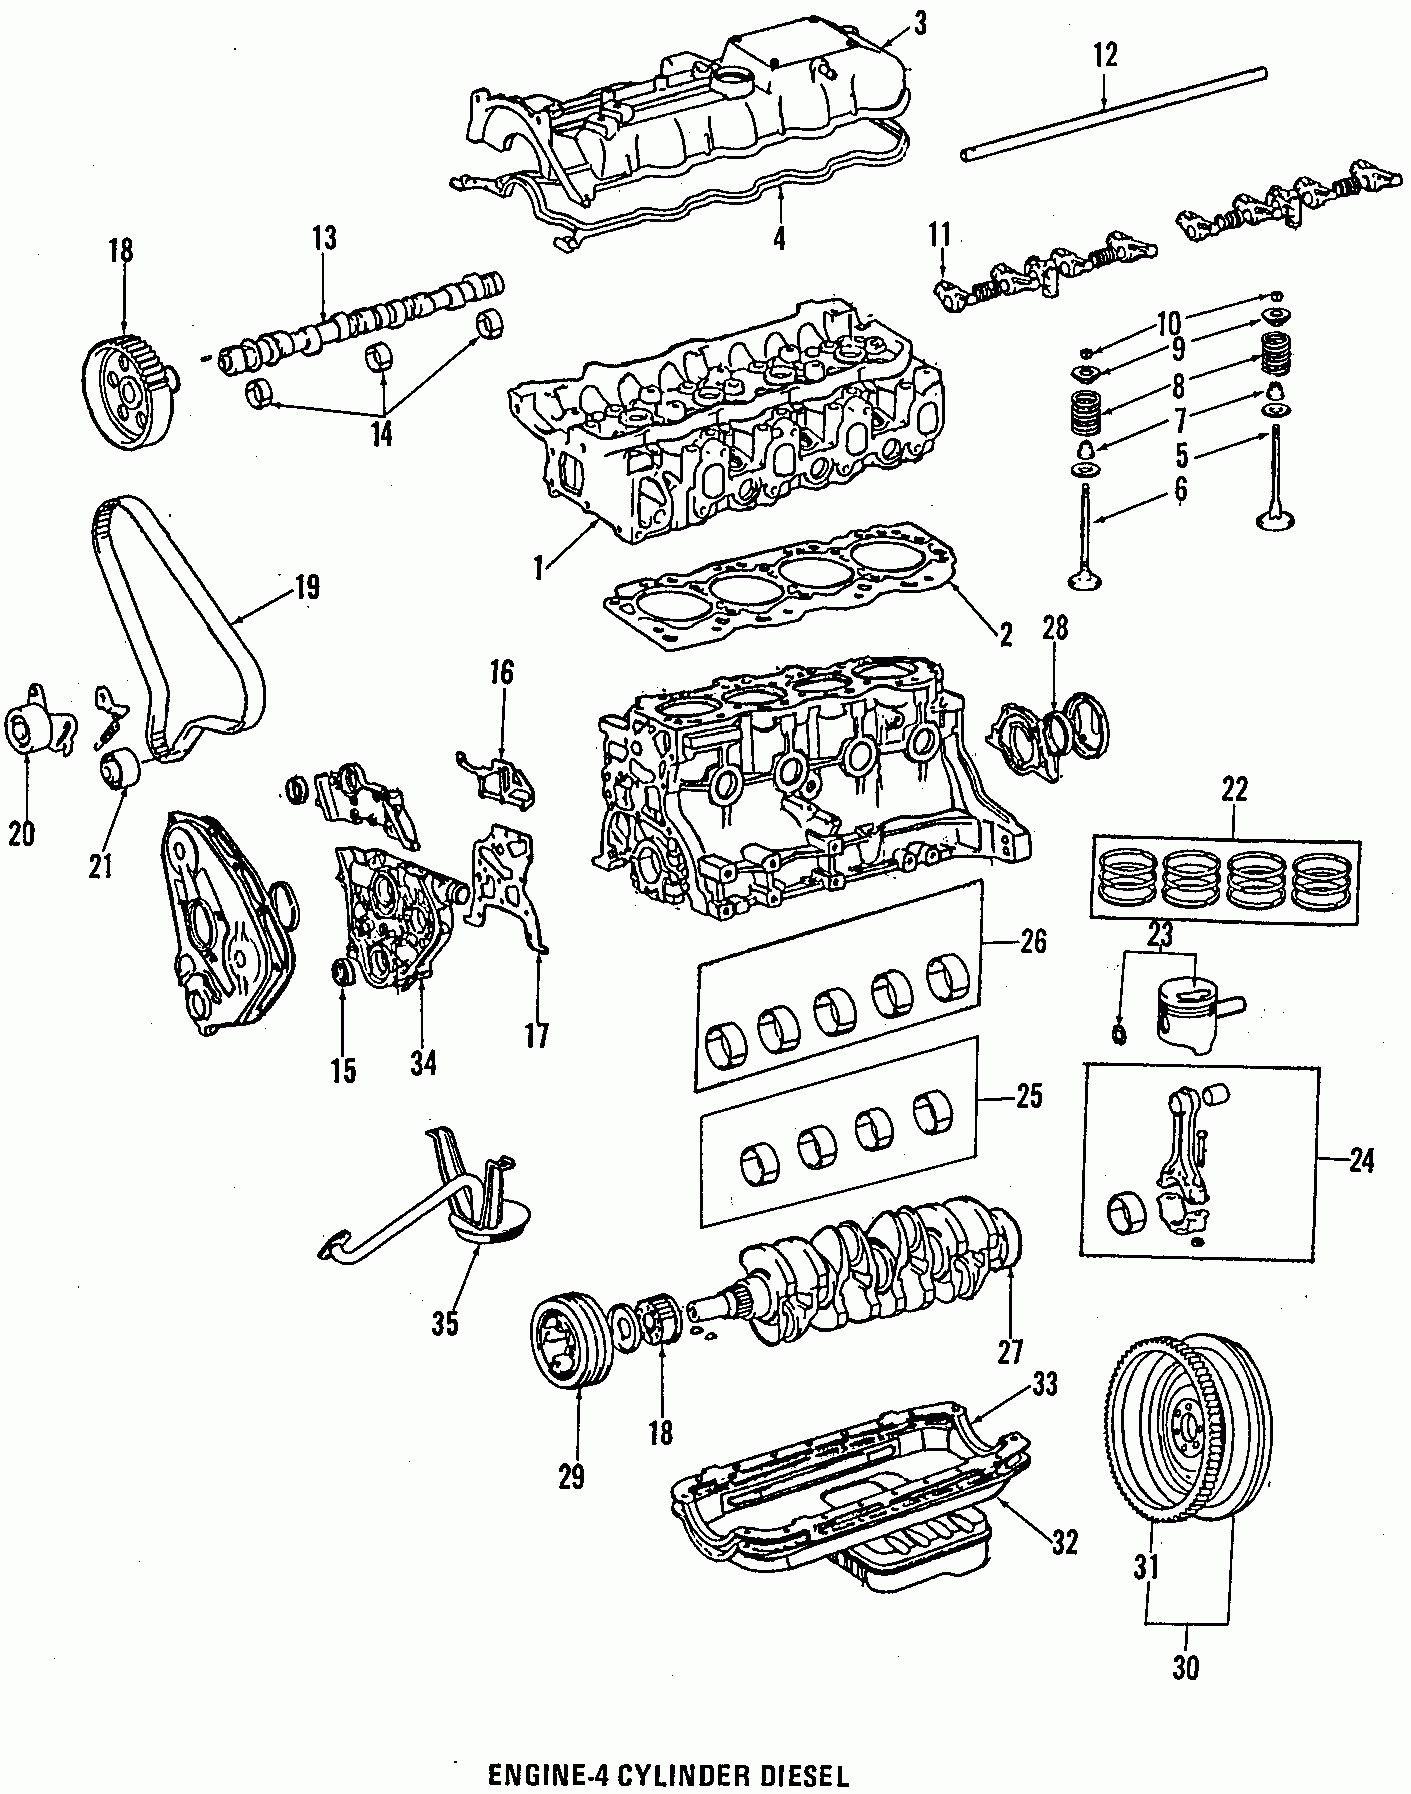 2005 toyota Tacoma Engine Diagram 1986 toyota 4runner